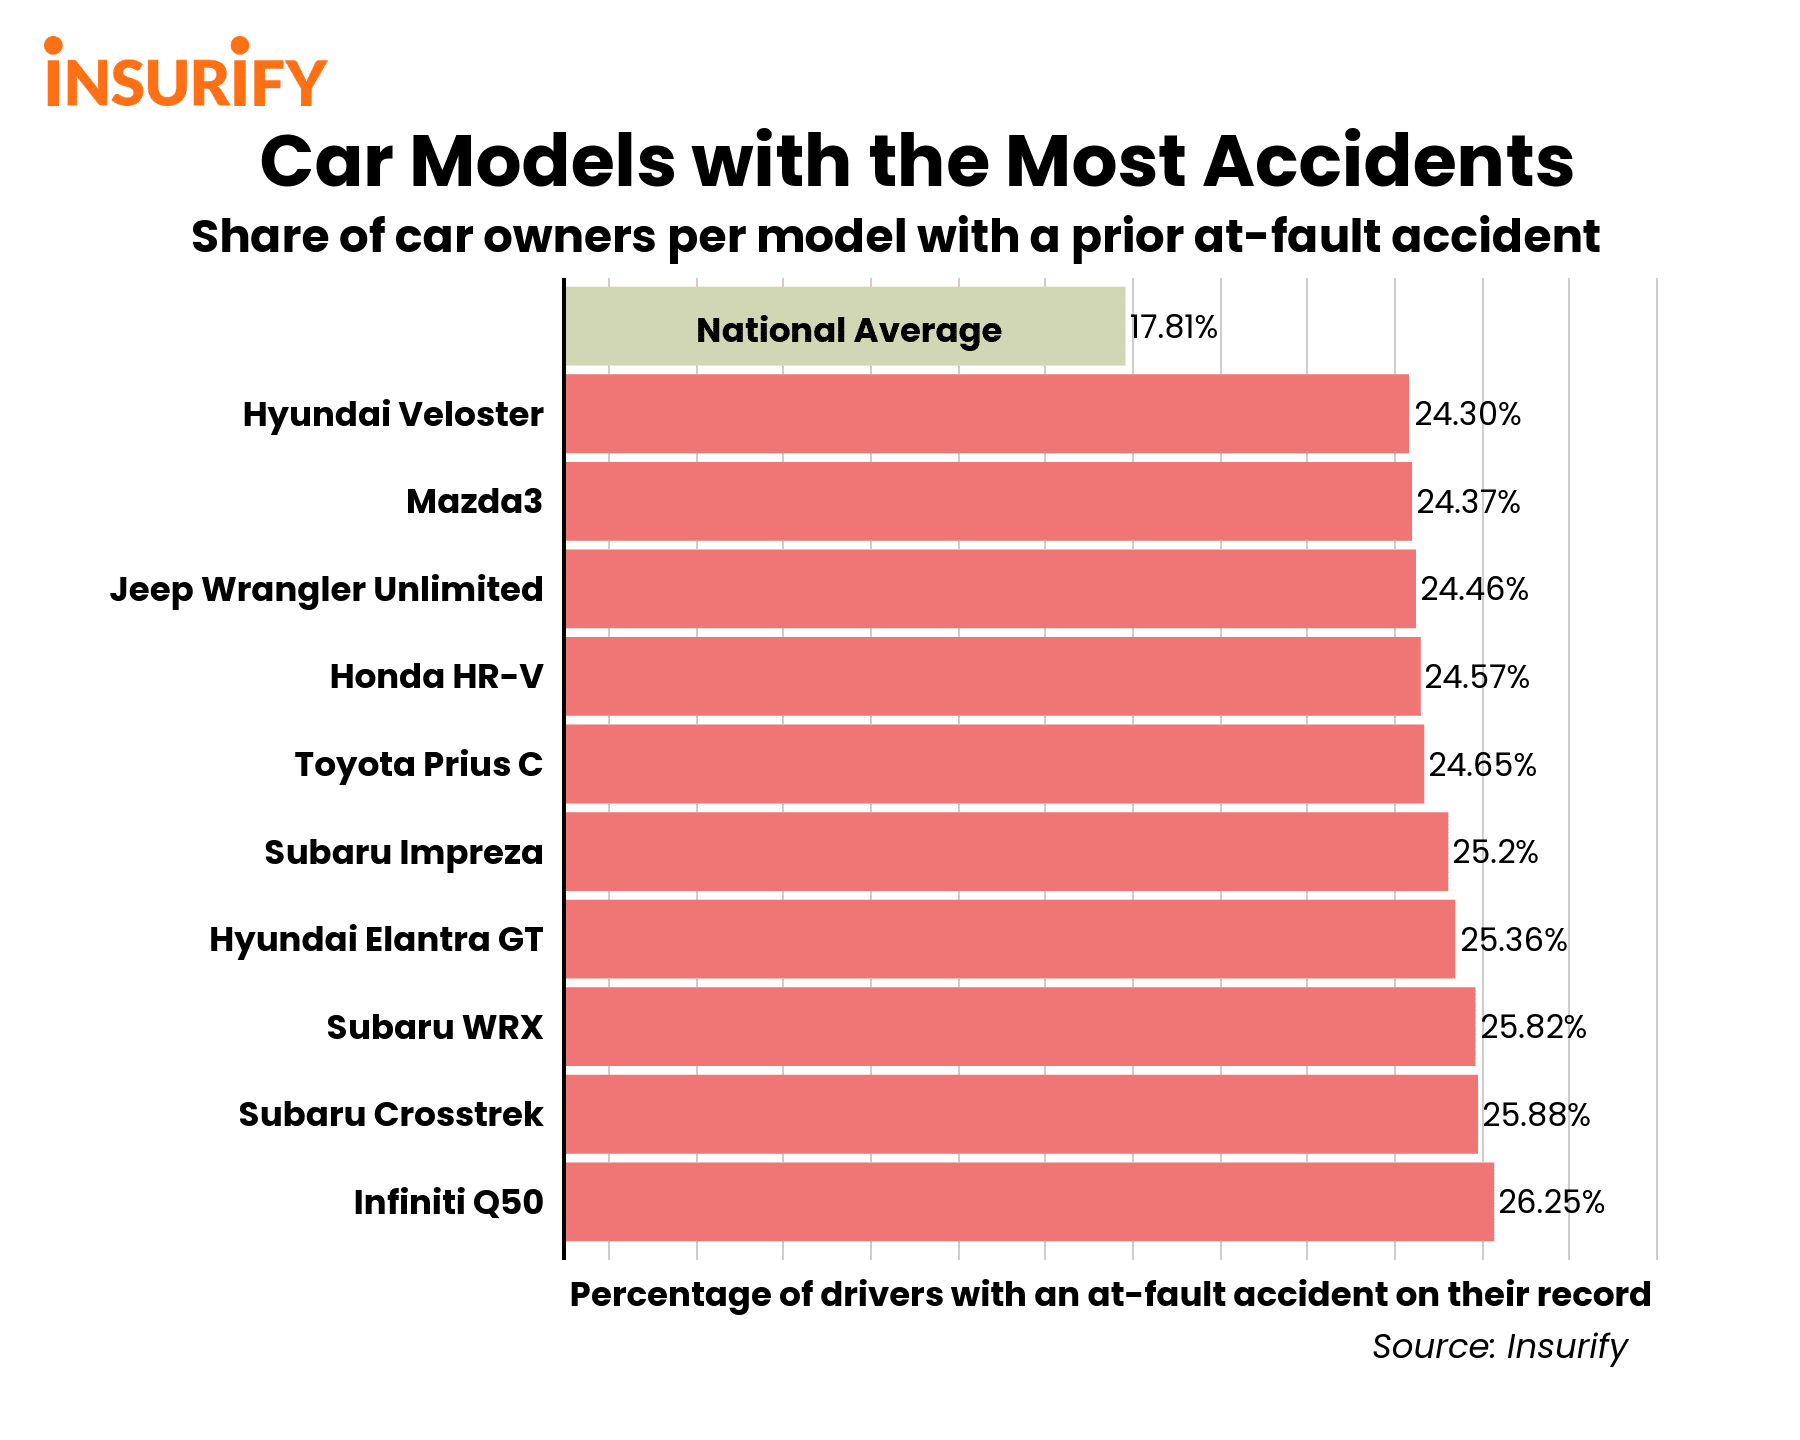 Bar chart showing the accident rates of car models with the most accident-prone drivers.